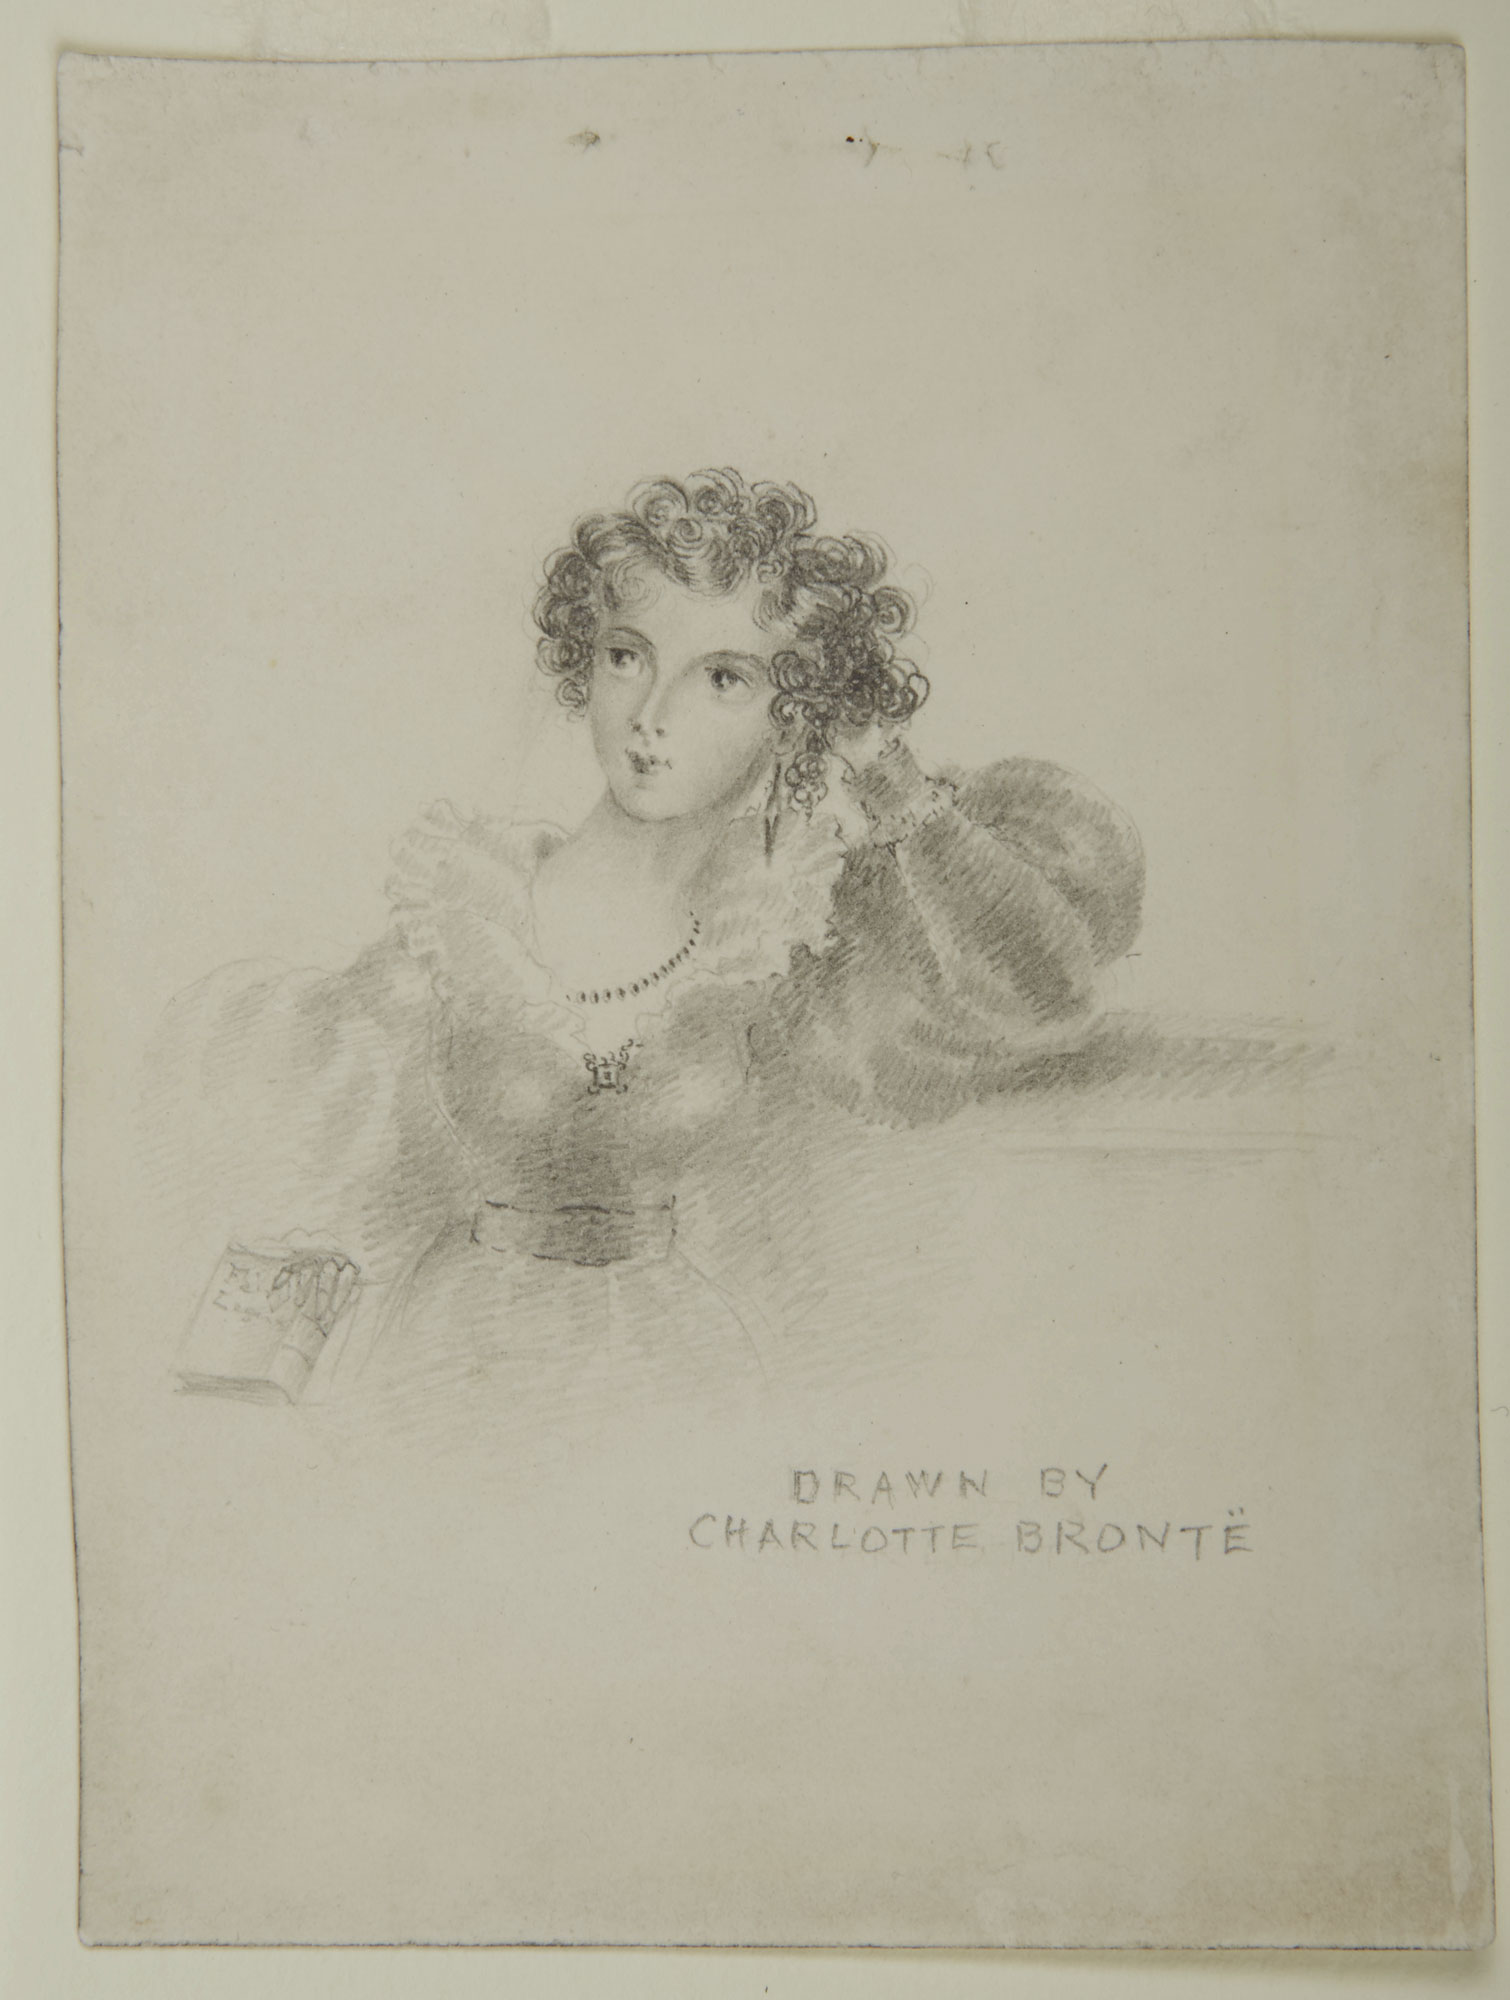 Drawing of a young woman by Charlotte Bronte [folio: 0]